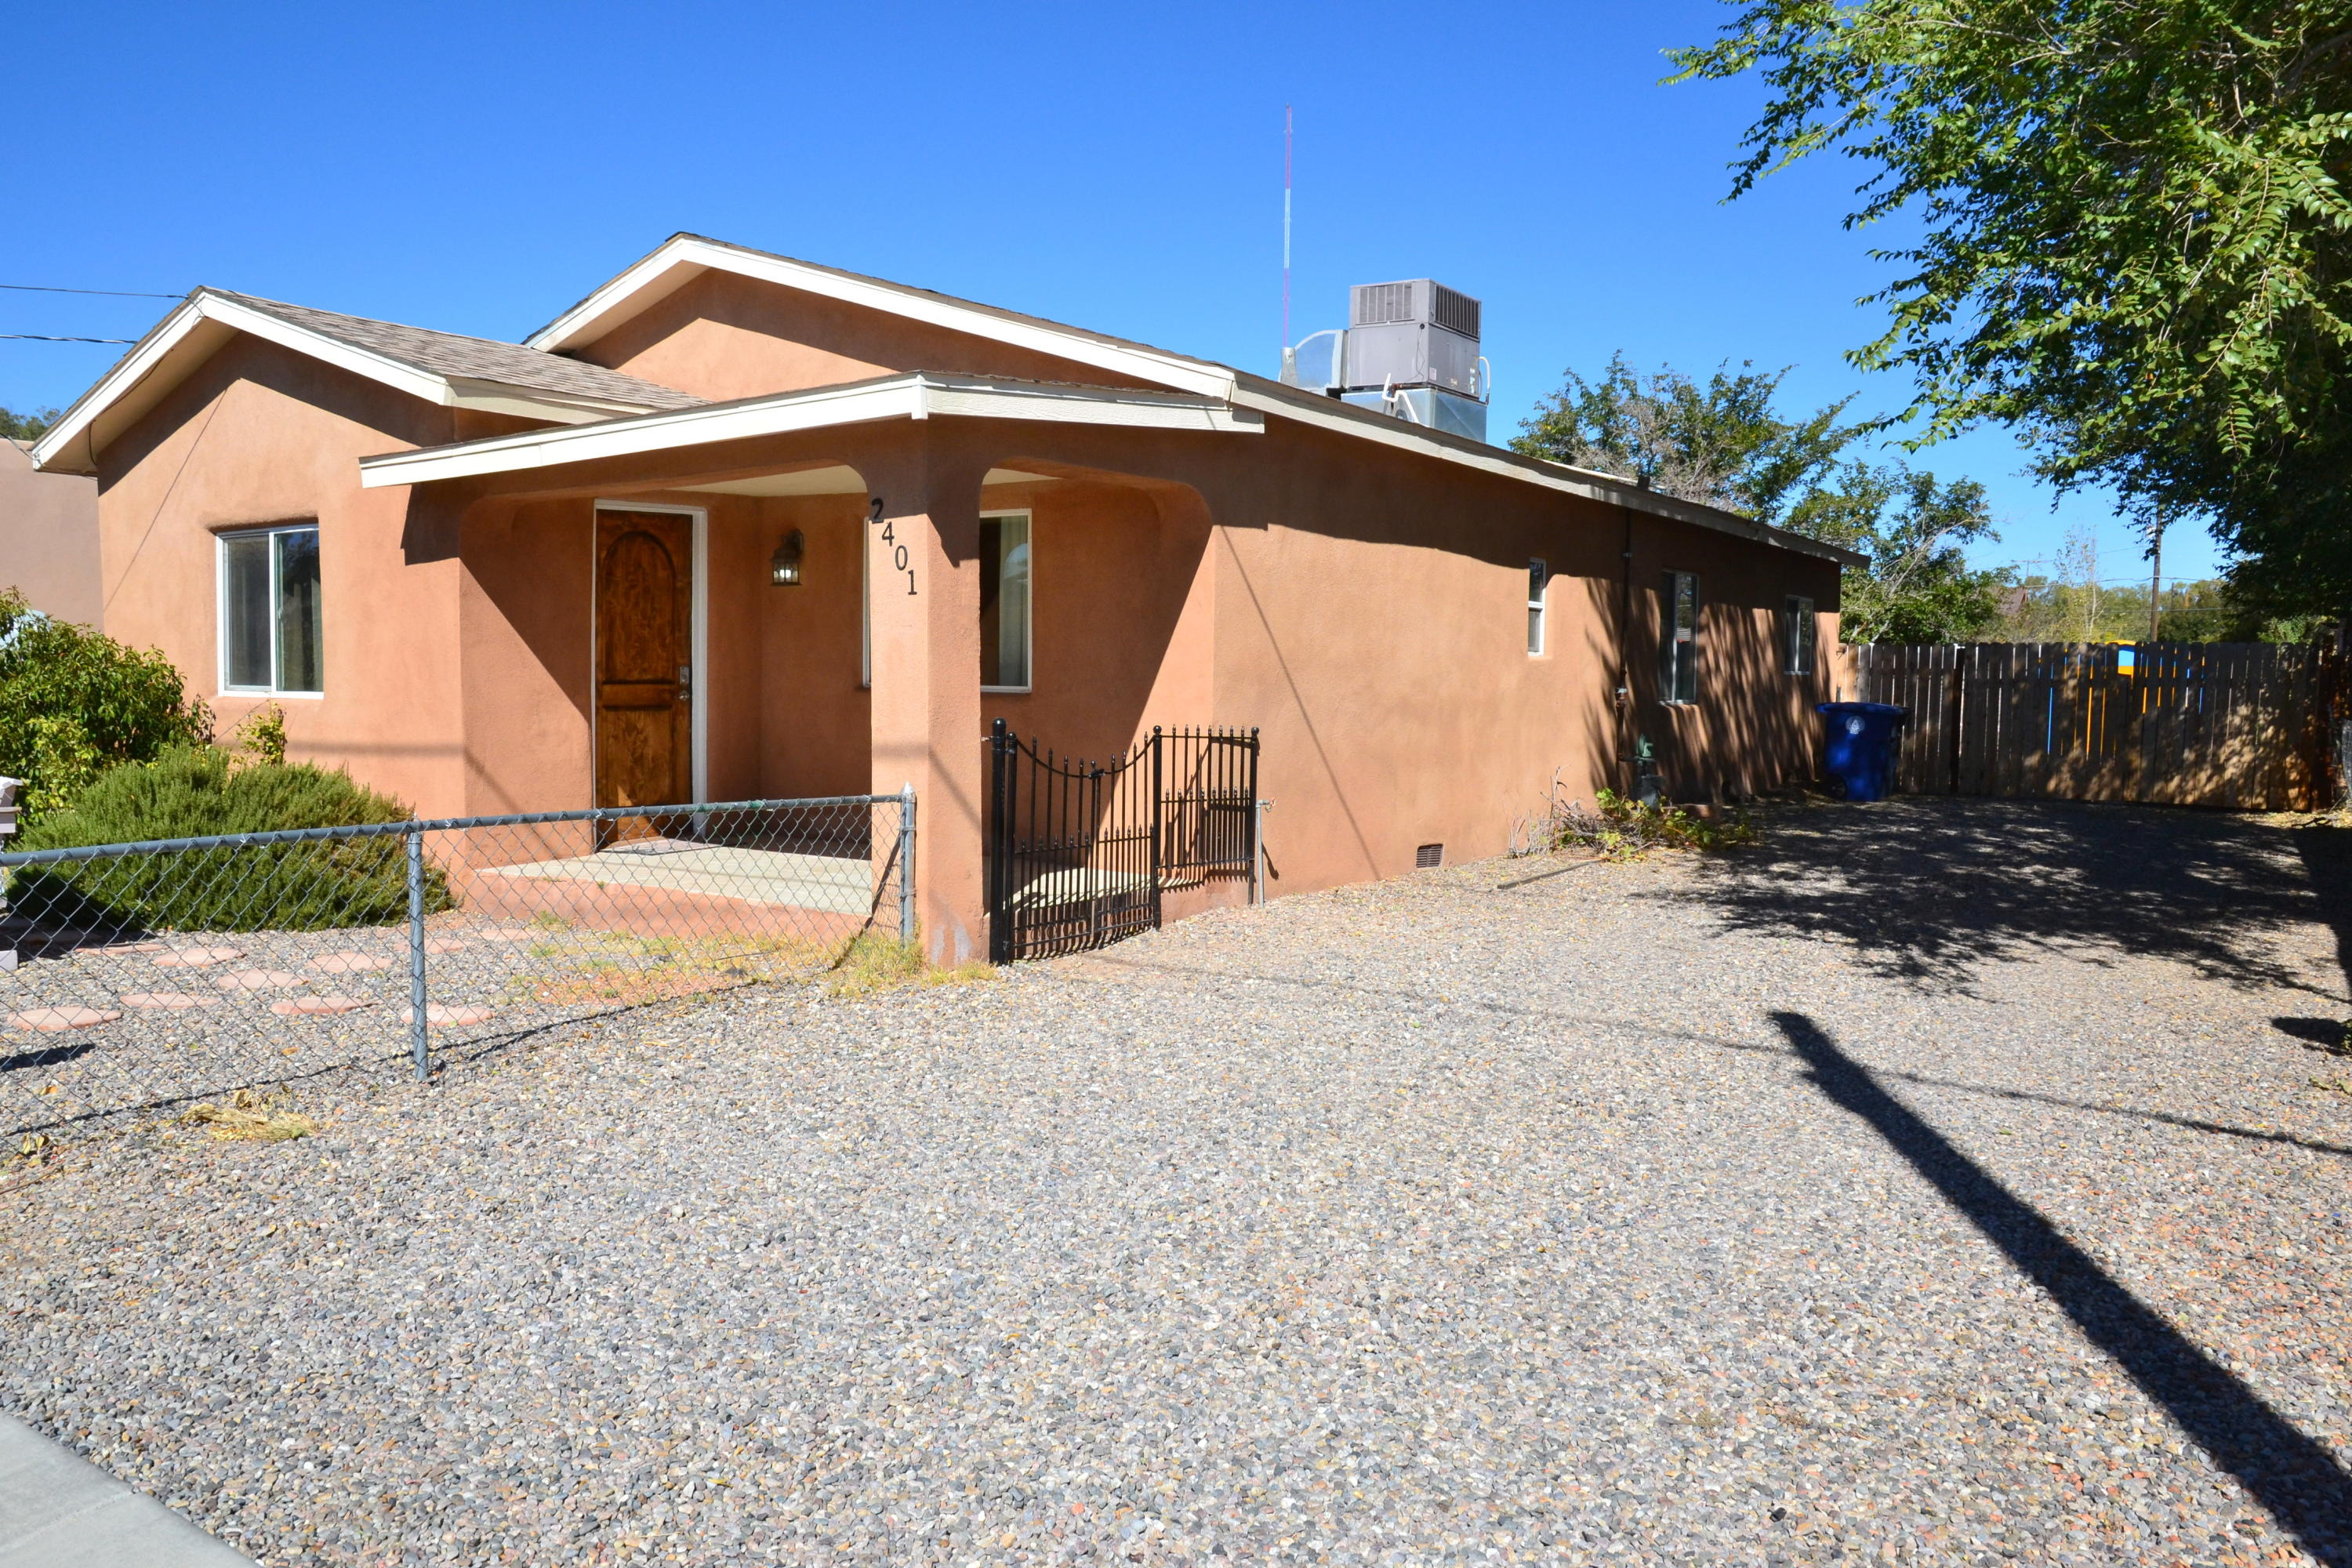 Come see this great property located near Old Town, The Albuquerque Country Club and Down Town!This home was remodeled a few years back and features a great kitchen with stainless appliances and granite counter tops and a breakfast bar, hard wood flooring, cedar lined closets, two full bathrooms, three bedrooms, a living room, dining room, laundry area, back yard access and a huge back yard for all of your needs!See this one today!